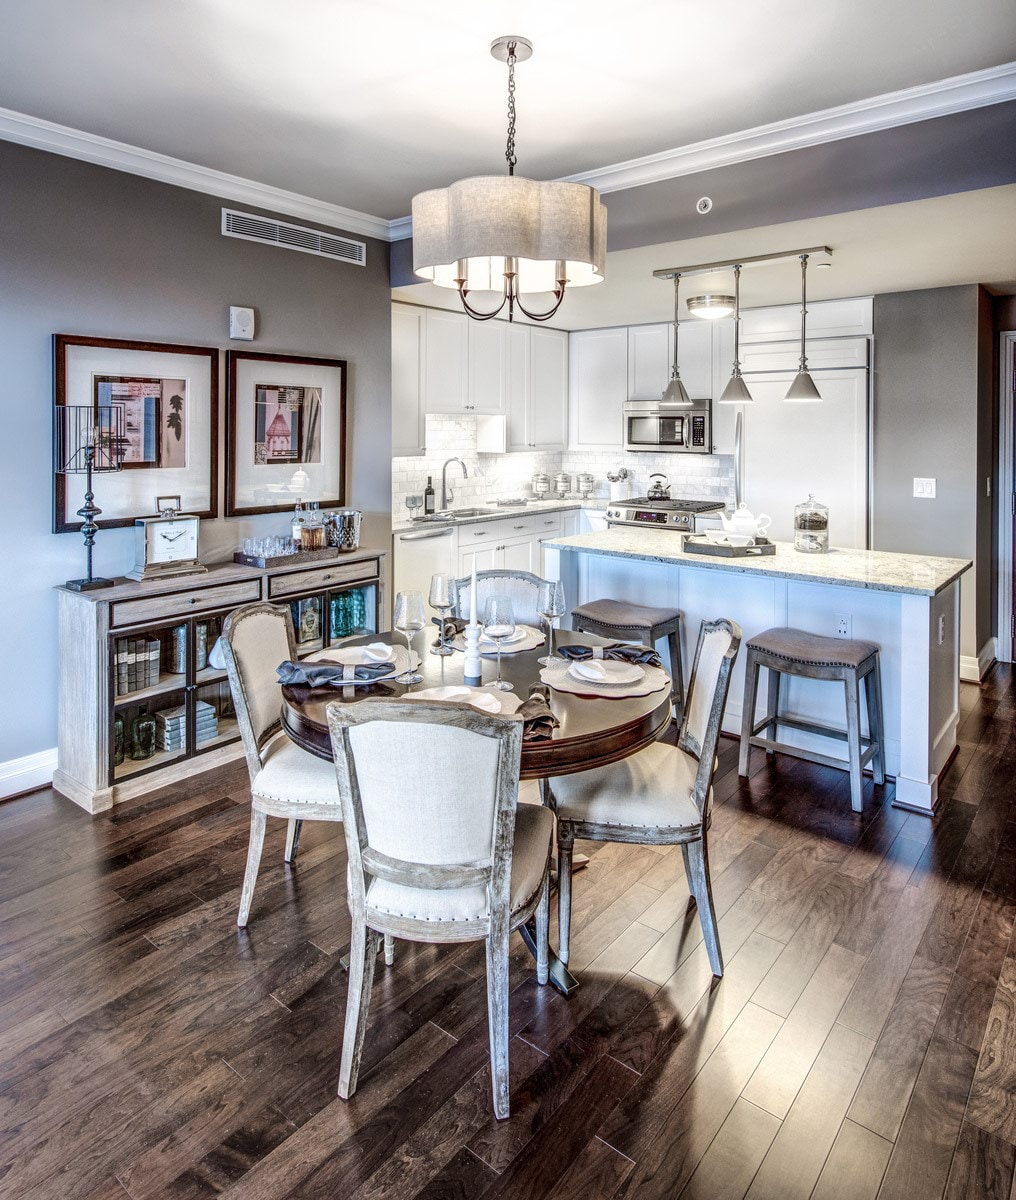 The Woodley - Washington, DC Apartments for rent